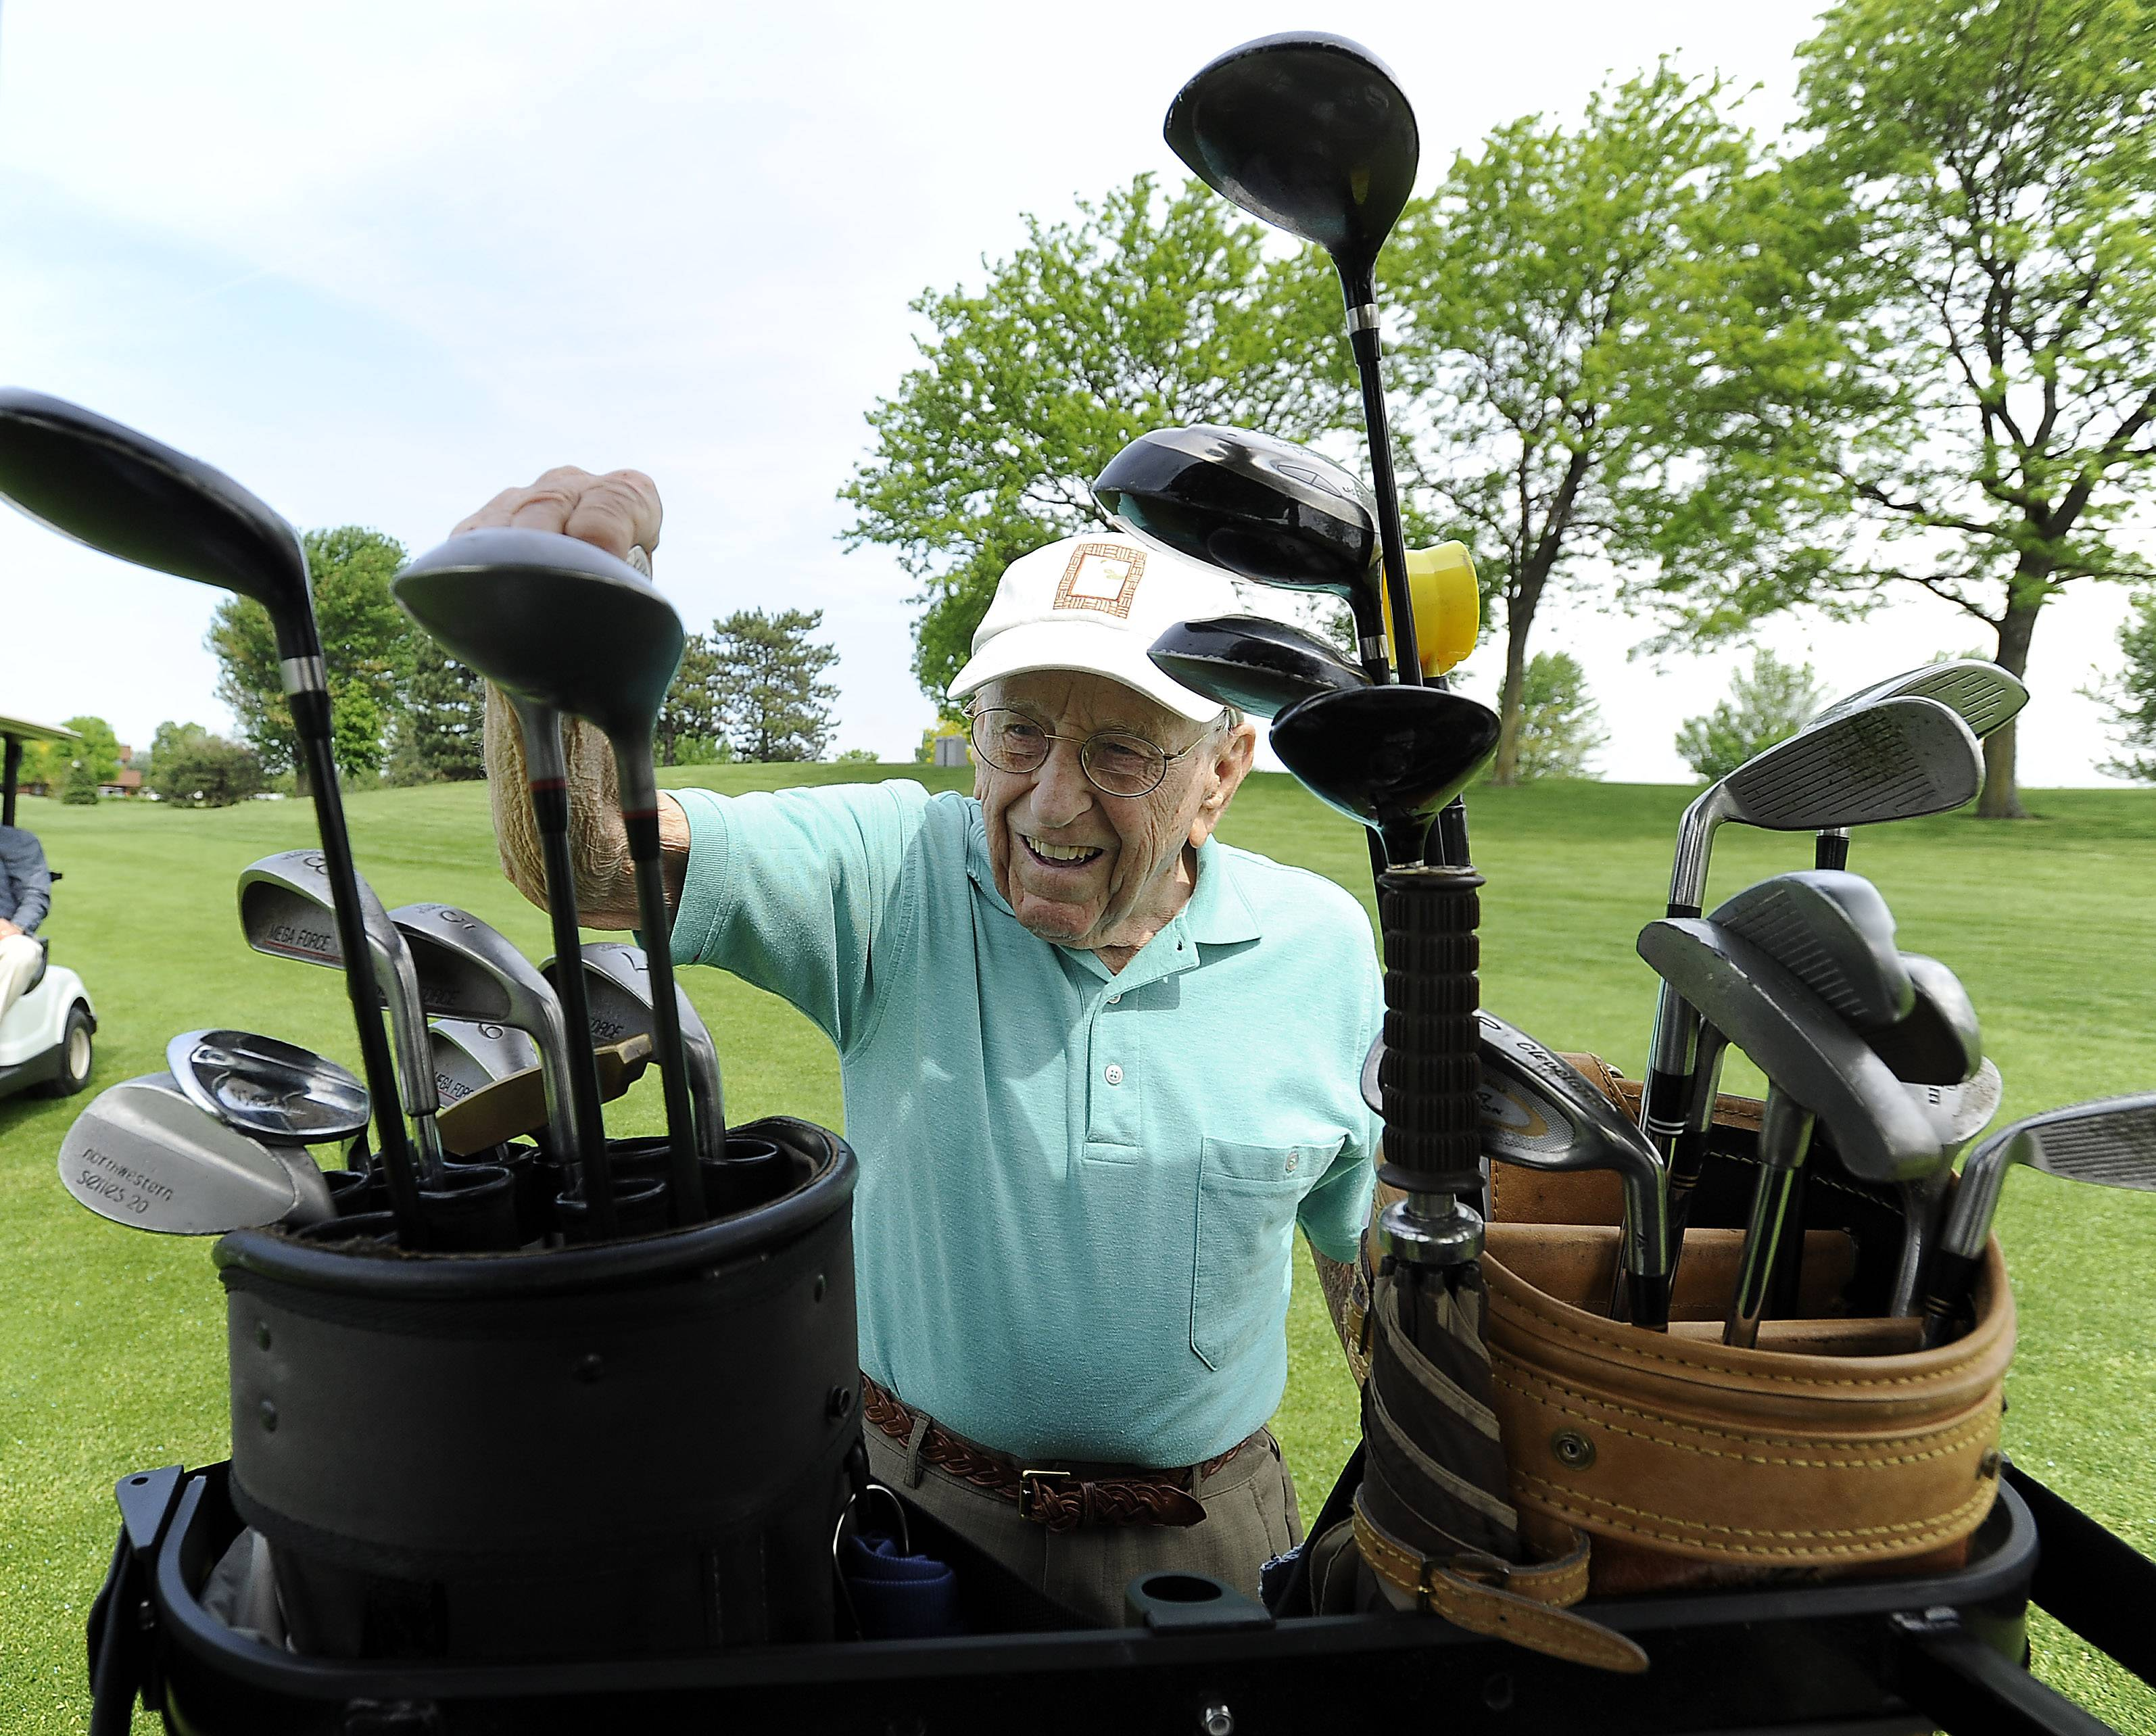 At age 103, golfer Dick Muhlethaler still fetches his clubs and even lifts his golf bag into and out of the cart. As a much younger man, Muhlethaler generally shot under 100 for 18 holes. He now aims to shoot half his age over nine holes.